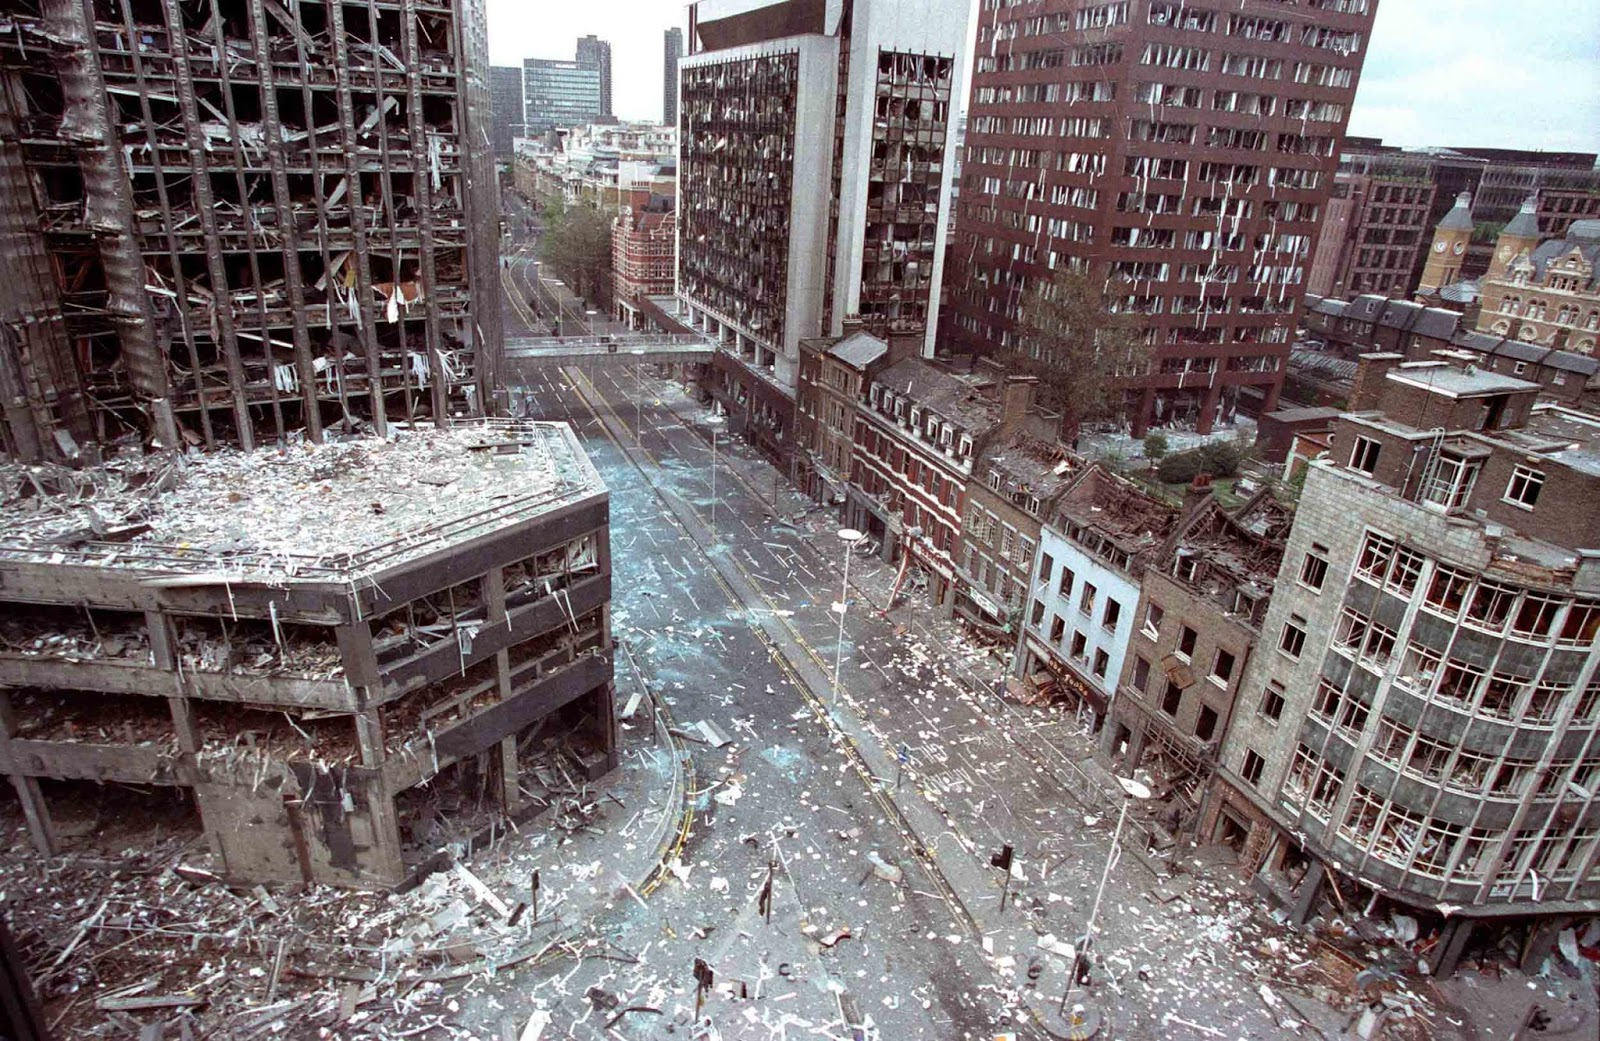 Wormwood Street in London after the IRA had detonated a truck bomb on 24 April, 1993.